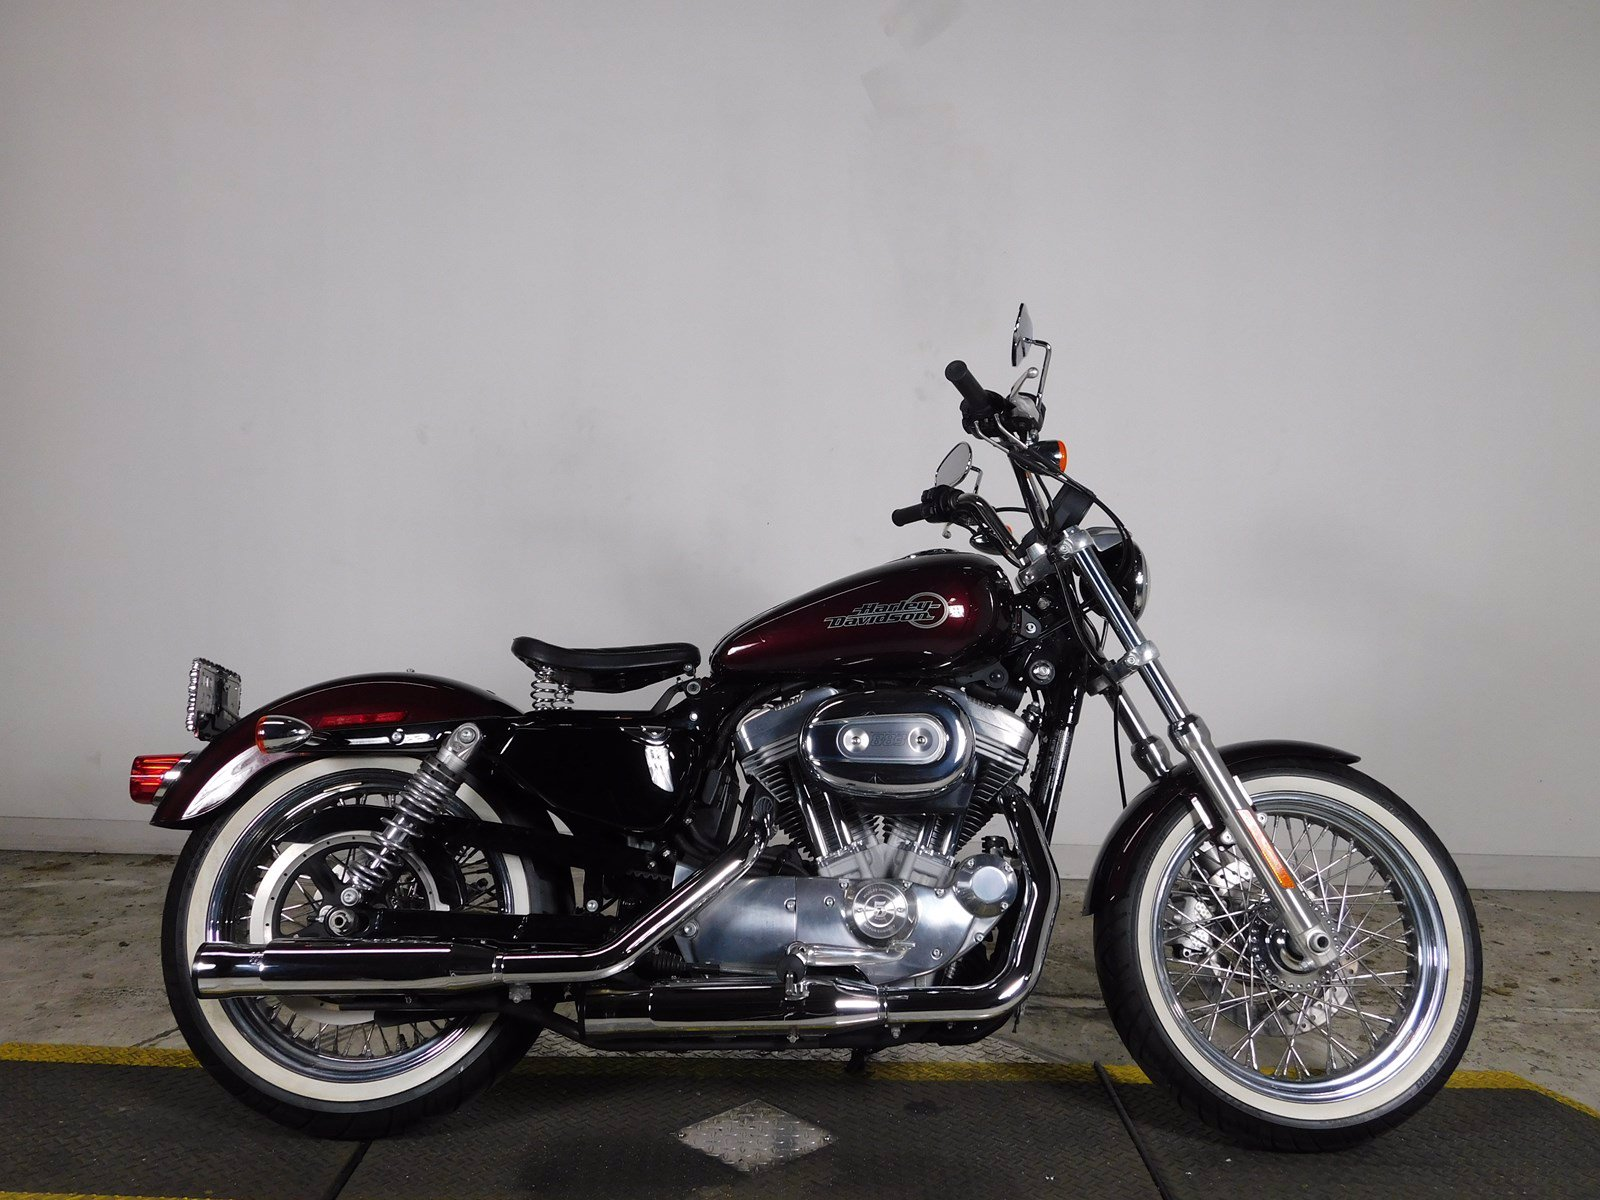 Pre-Owned 2019 Harley-Davidson Sportster 883 Superlow XL883L